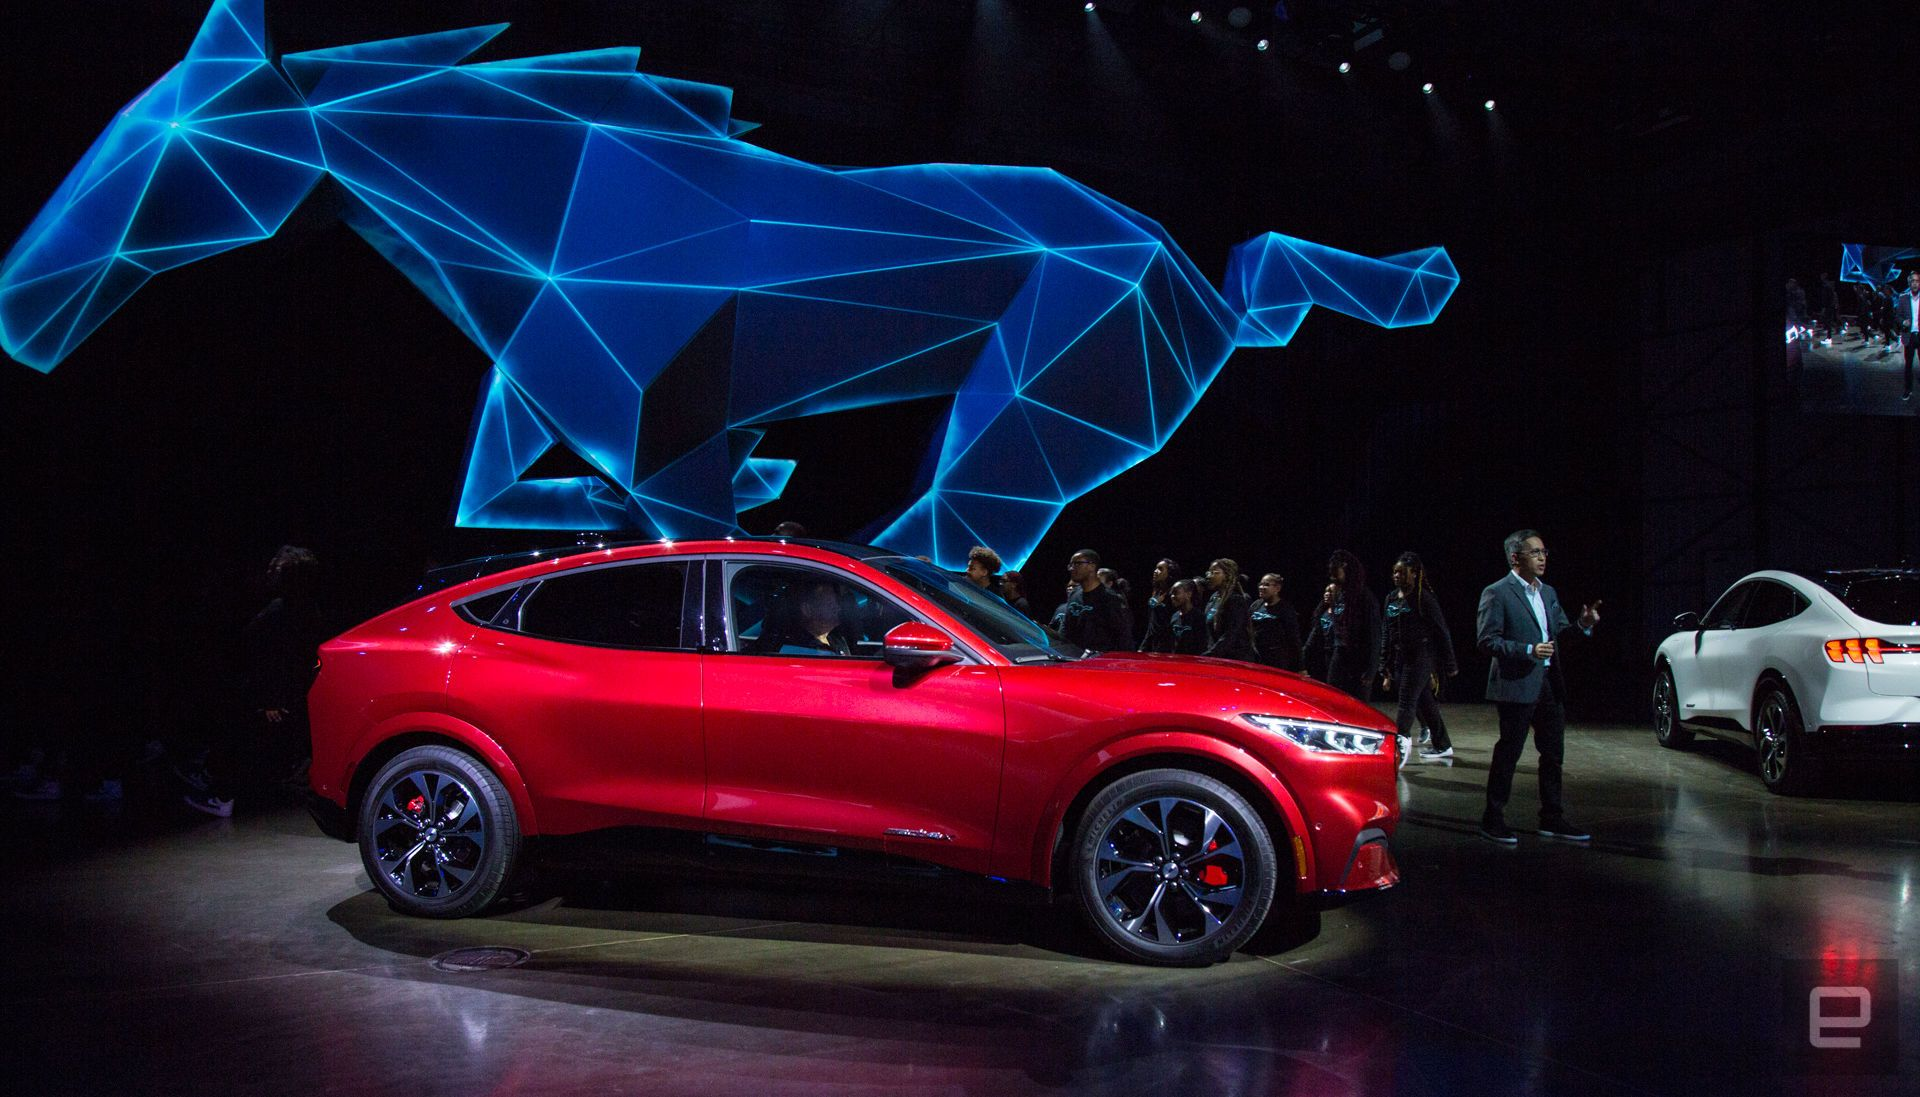 Ford May Over Deliver On The Mustang Mach Es Power And Torque Technews In 2020 Ford Mustang Mustang Ford